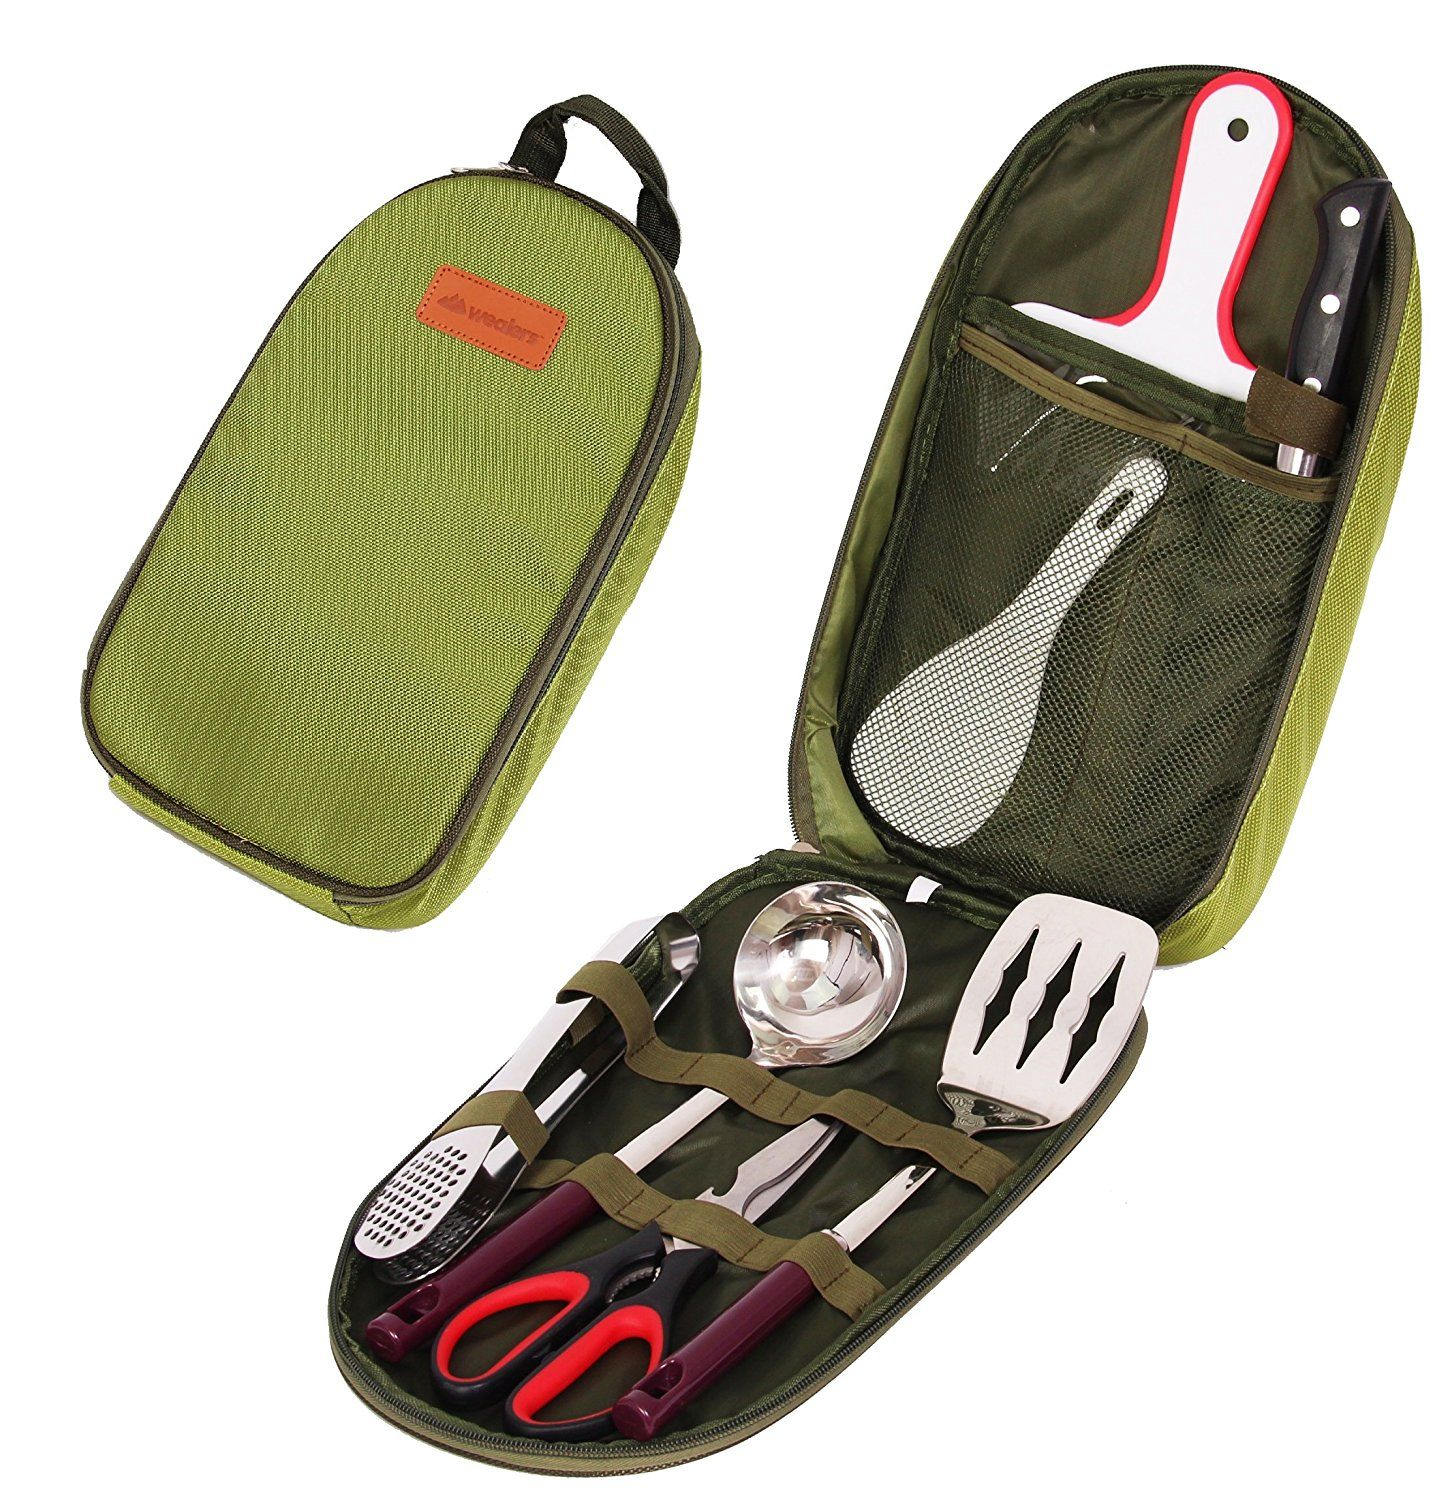 Portable Camping Utensil Set Carrying Case Organizer BBQ Outdoor Accessories Kit